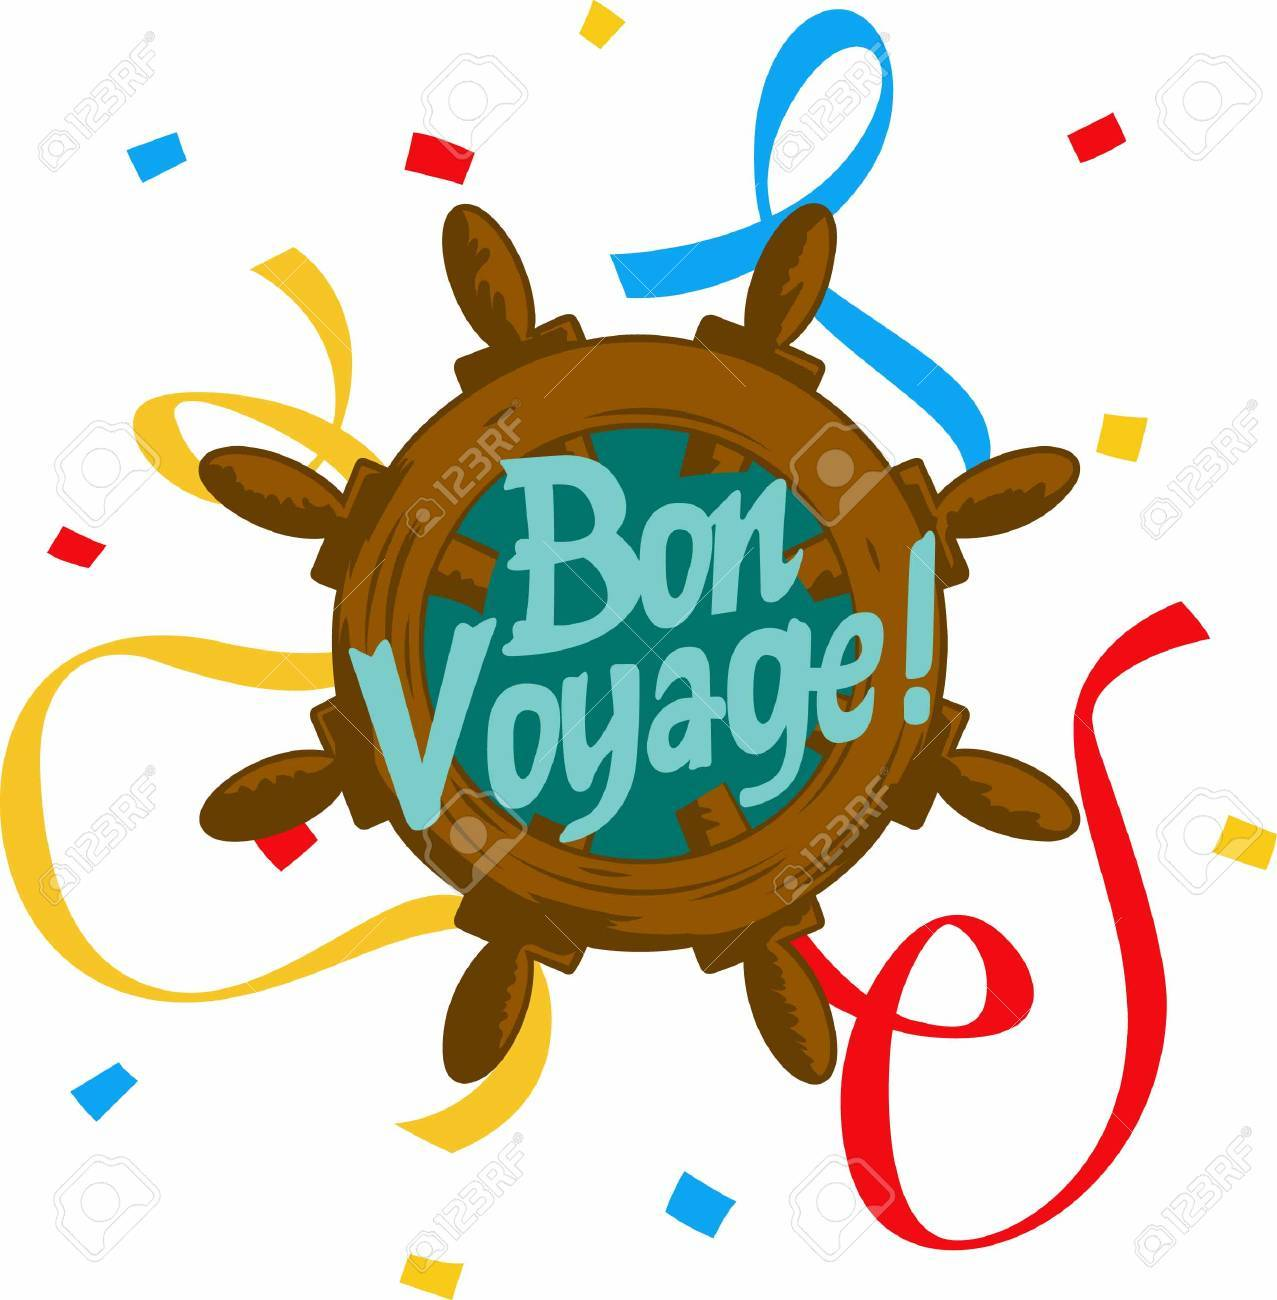 ave happy travels with a bon voyage saying royalty free cliparts rh 123rf com Bon Voyage Funny Bon Voyage Wishes